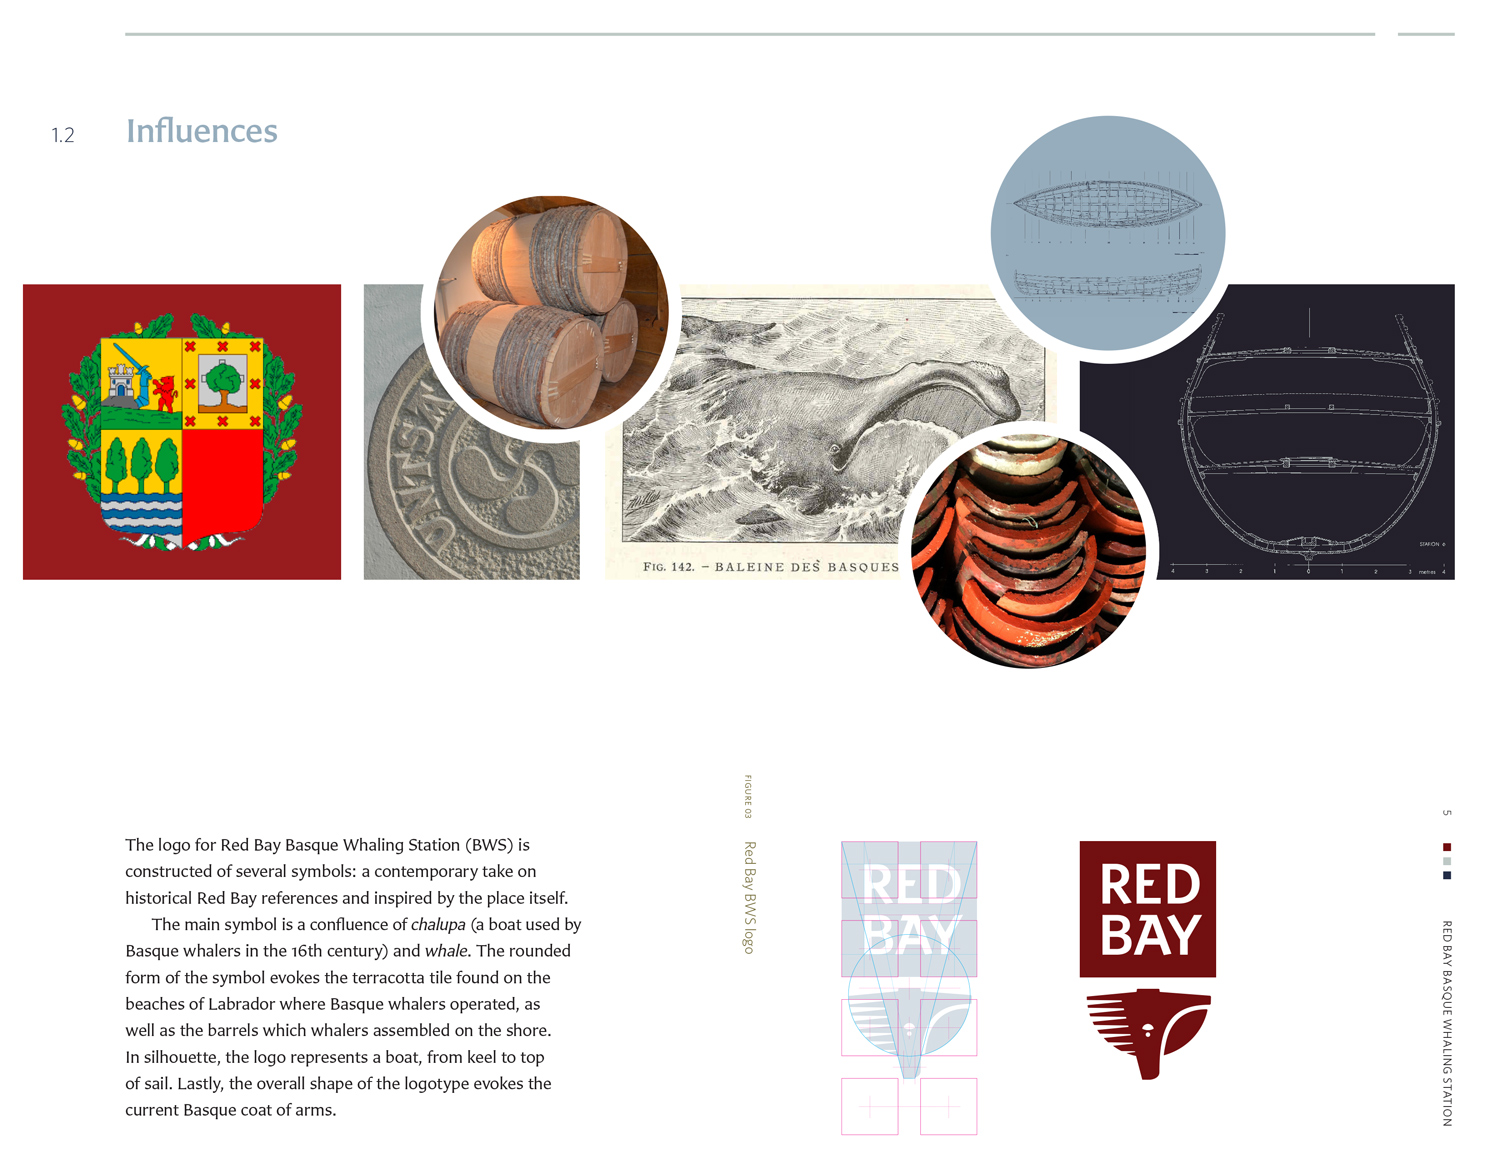 INFLUENCES The logo for Red Bay Basque Whaling Station is constructed of several symbols: a contemporary take on historical Red Bay references and inspired by the place itself.